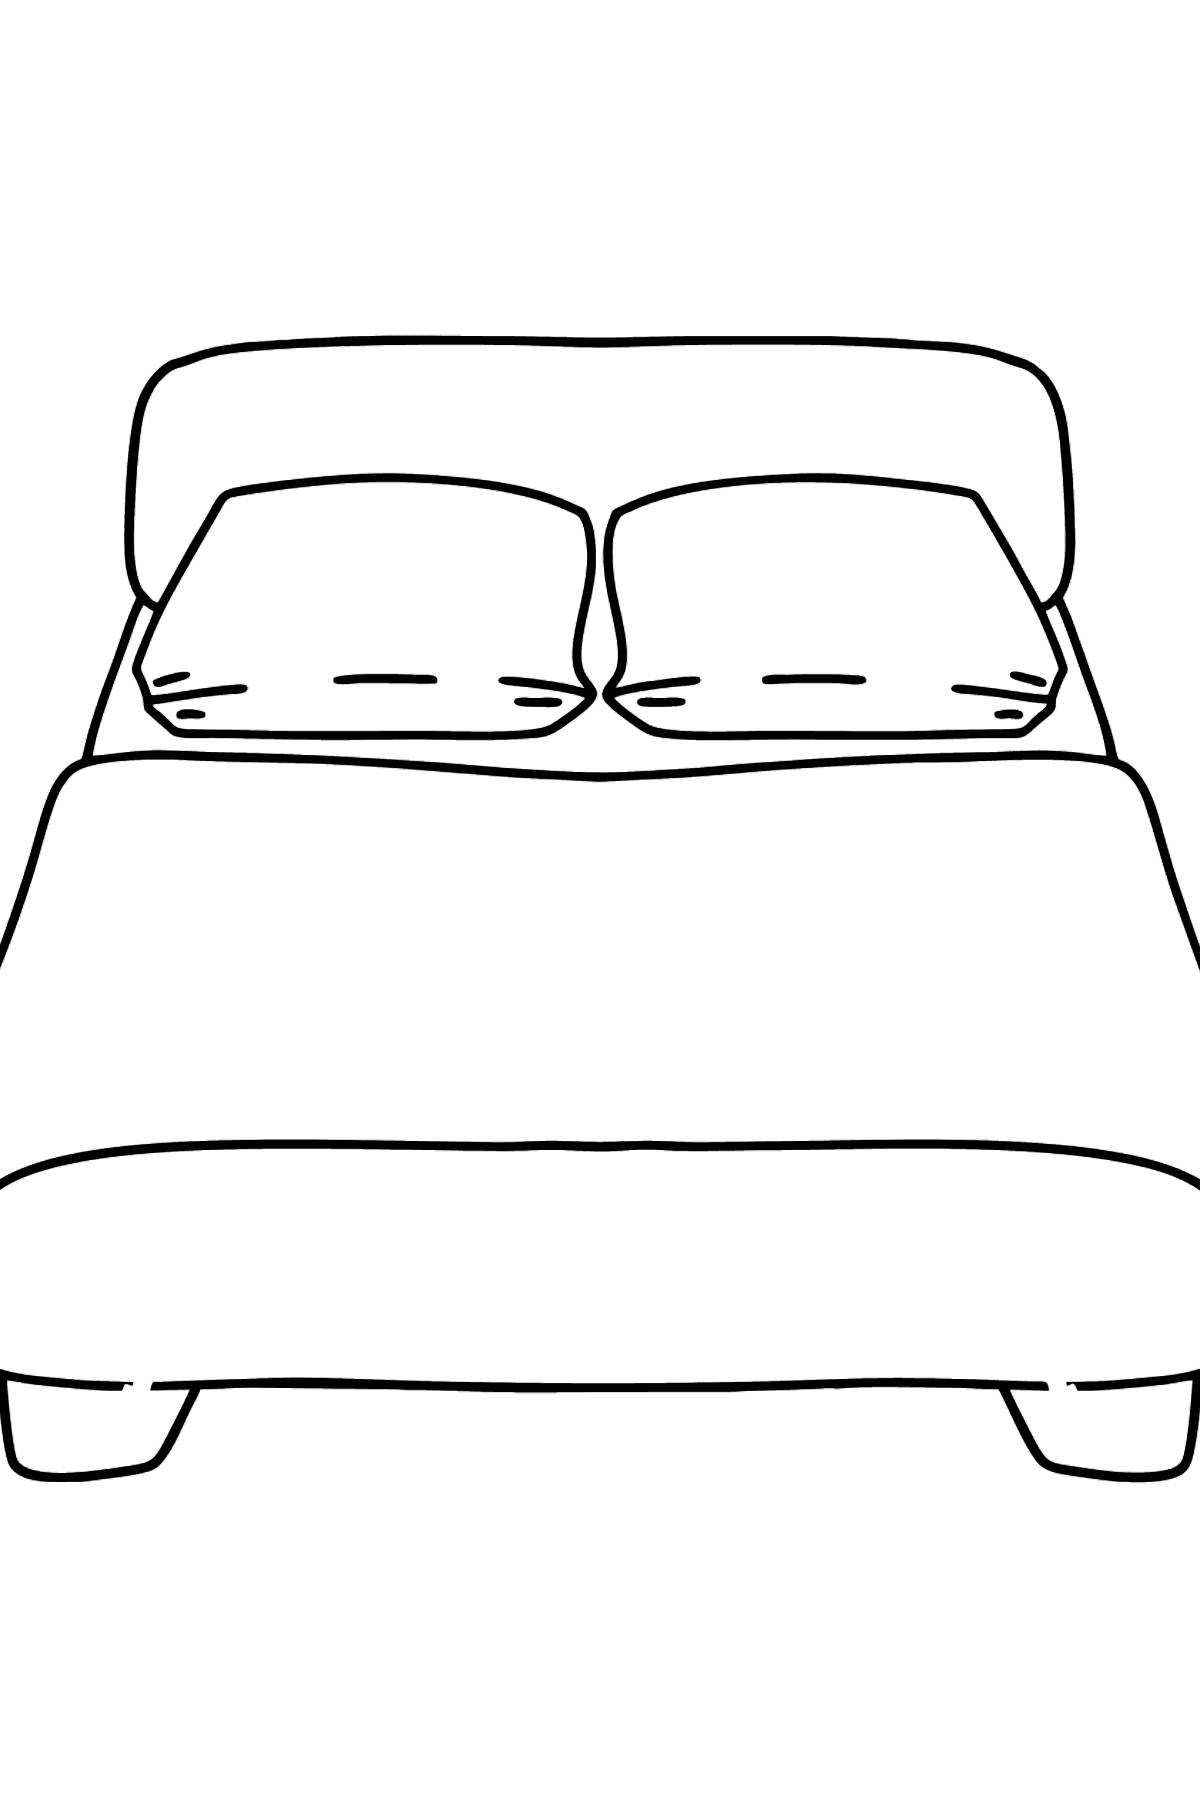 Bed coloring page - Coloring Pages for Kids